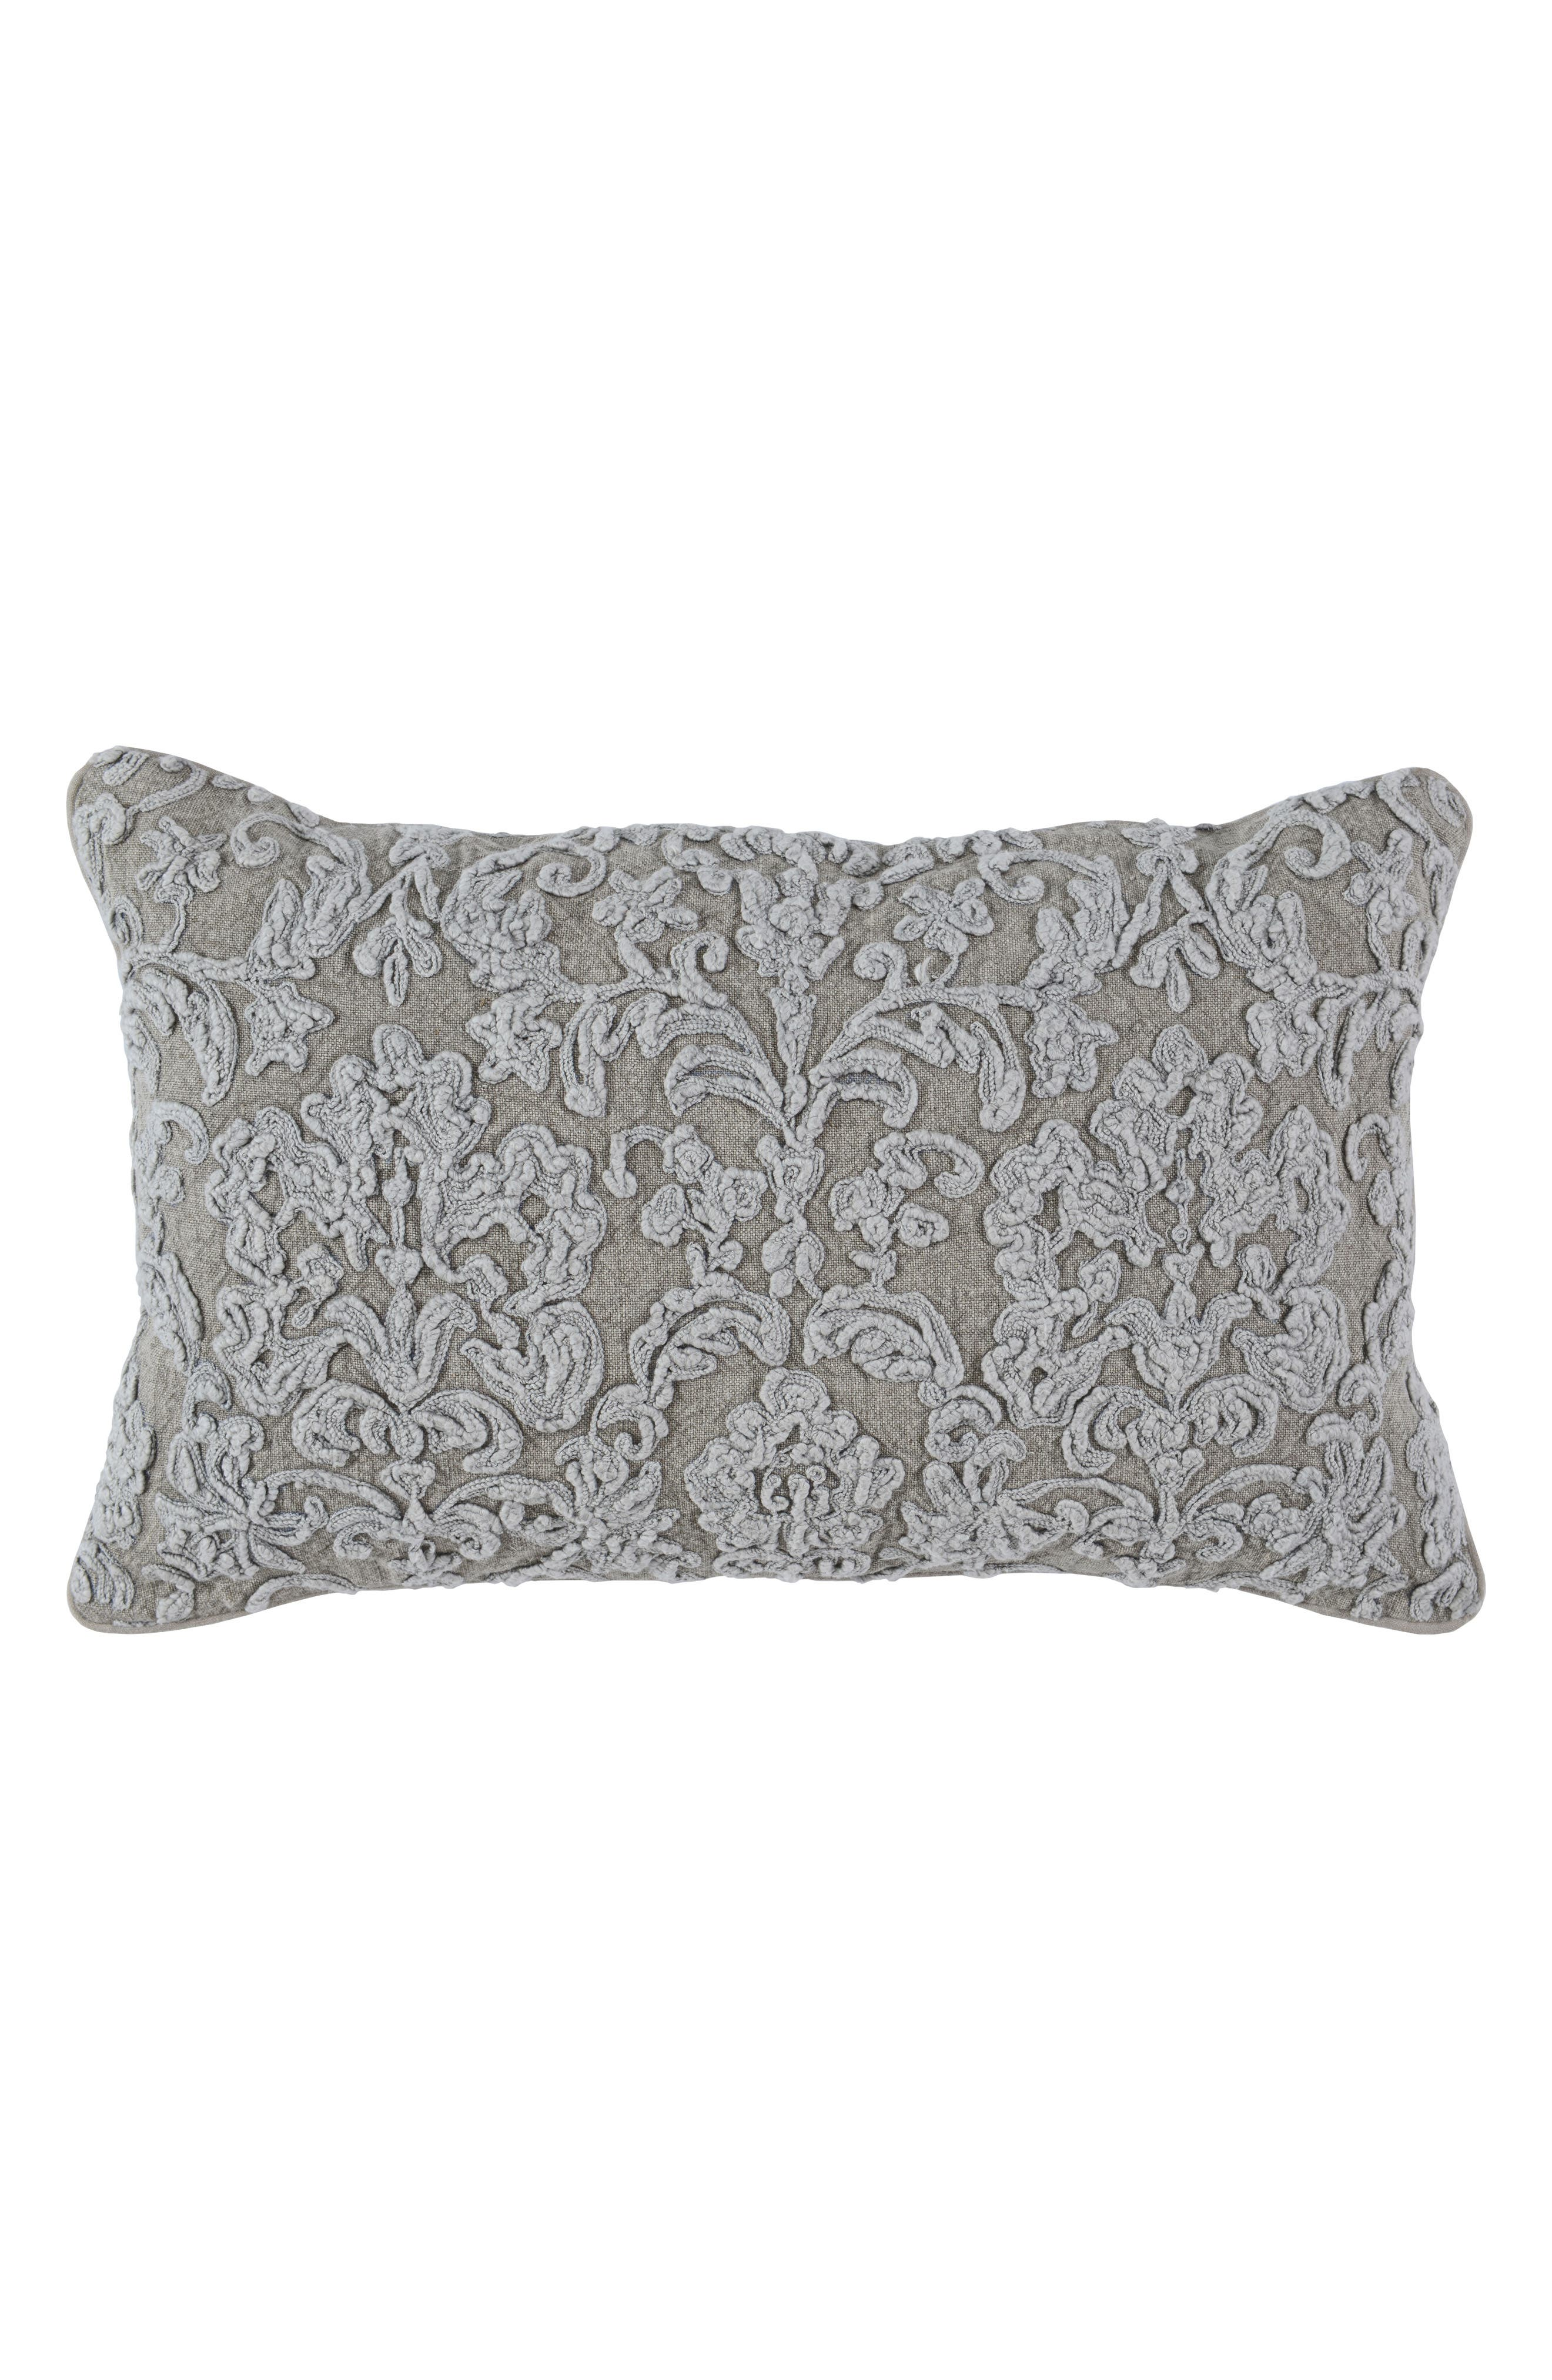 Giselle Accent Pillow,                             Main thumbnail 1, color,                             NATURAL